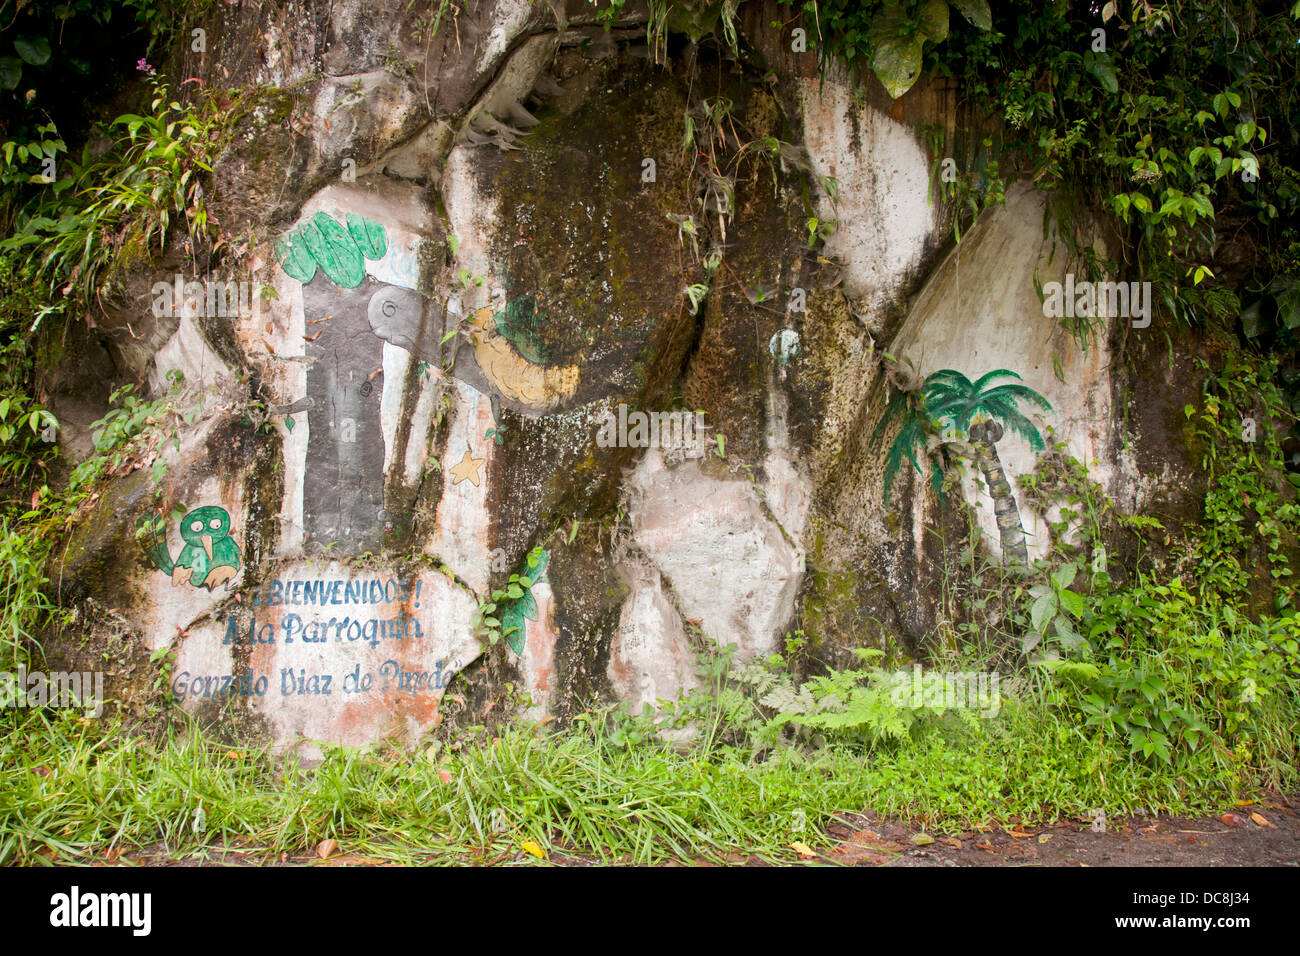 South America, Ecuador, El Chaco. An old sign painted on a rock wall. - Stock Image